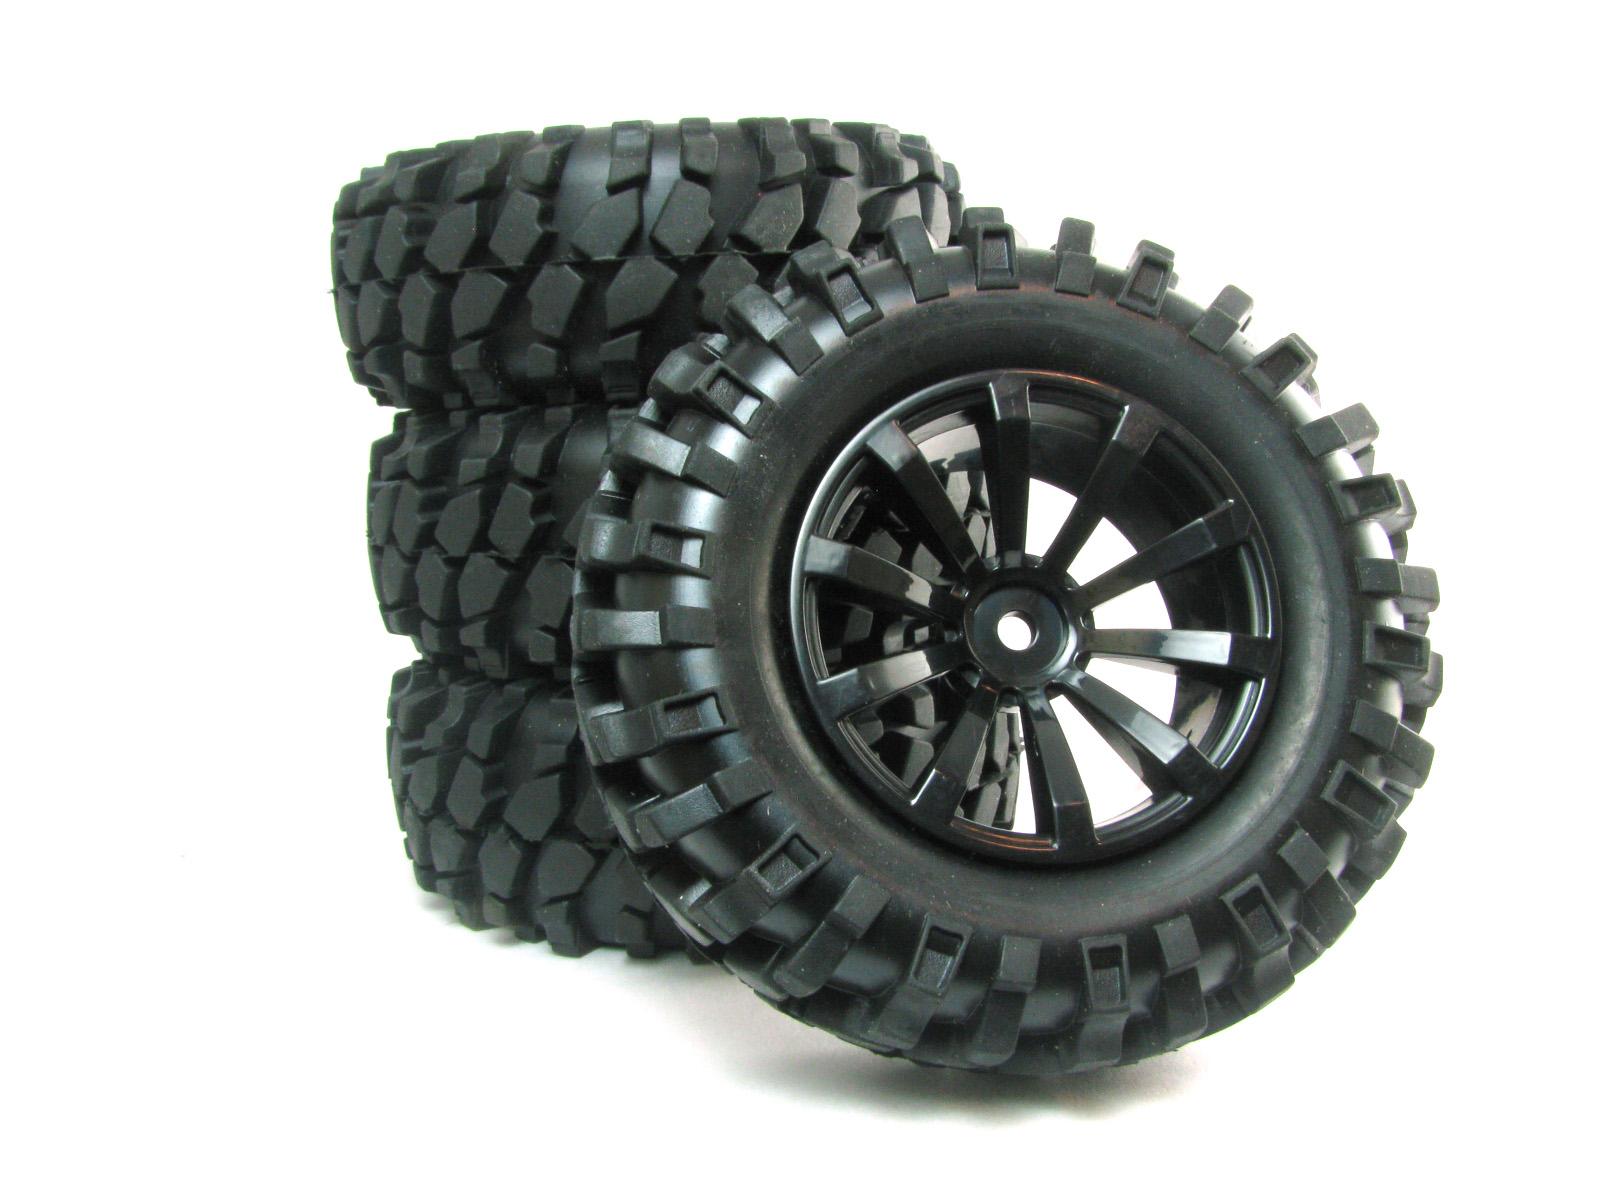 Rock Crawler Wheels : Rock crawler tires with foam inserts and rims set piece